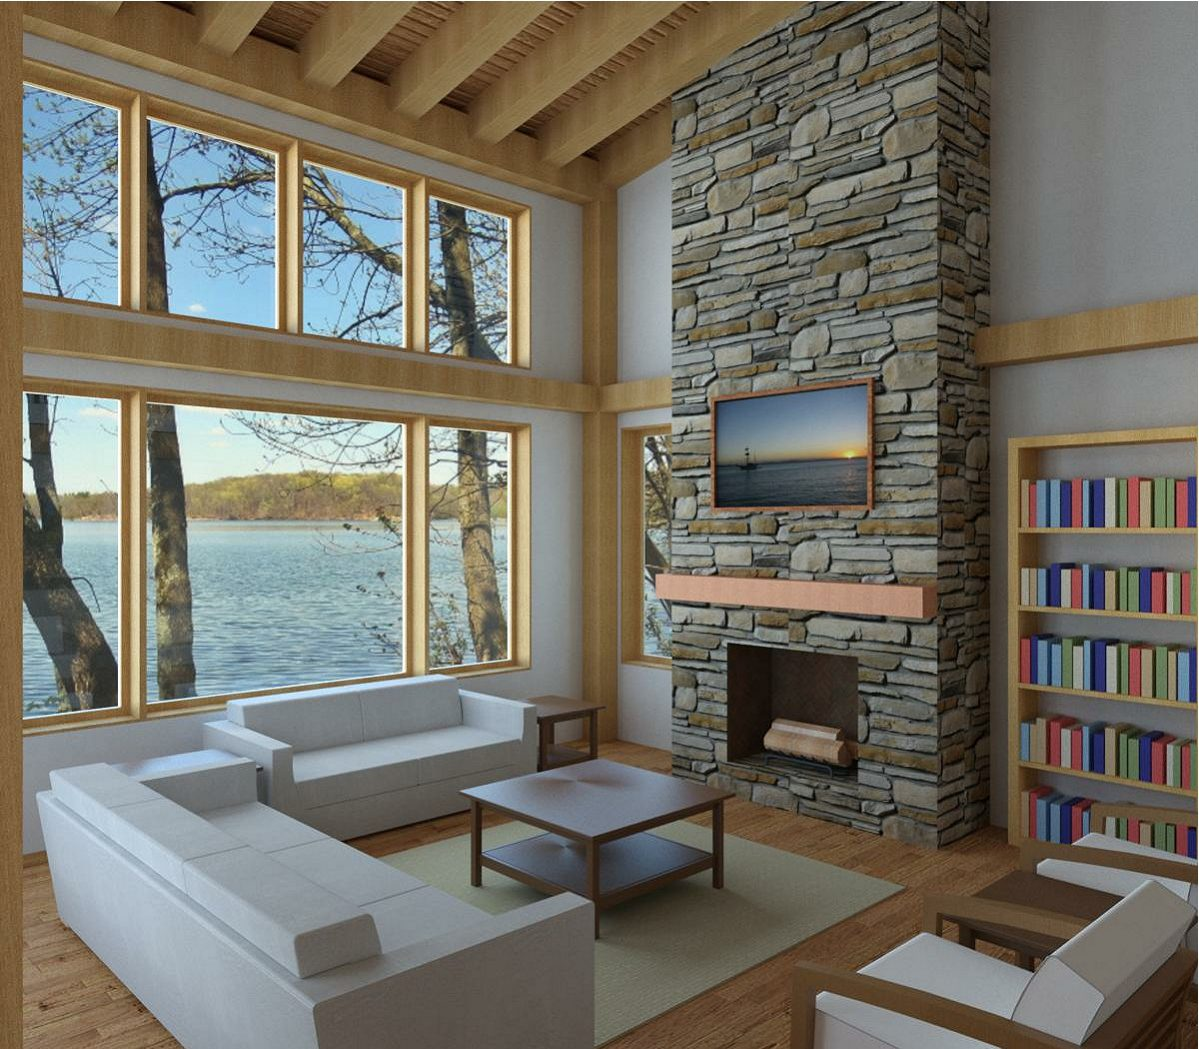 Normerica Timber Frames, House Plan, The Killarney 2134, Living Room, Fireplace